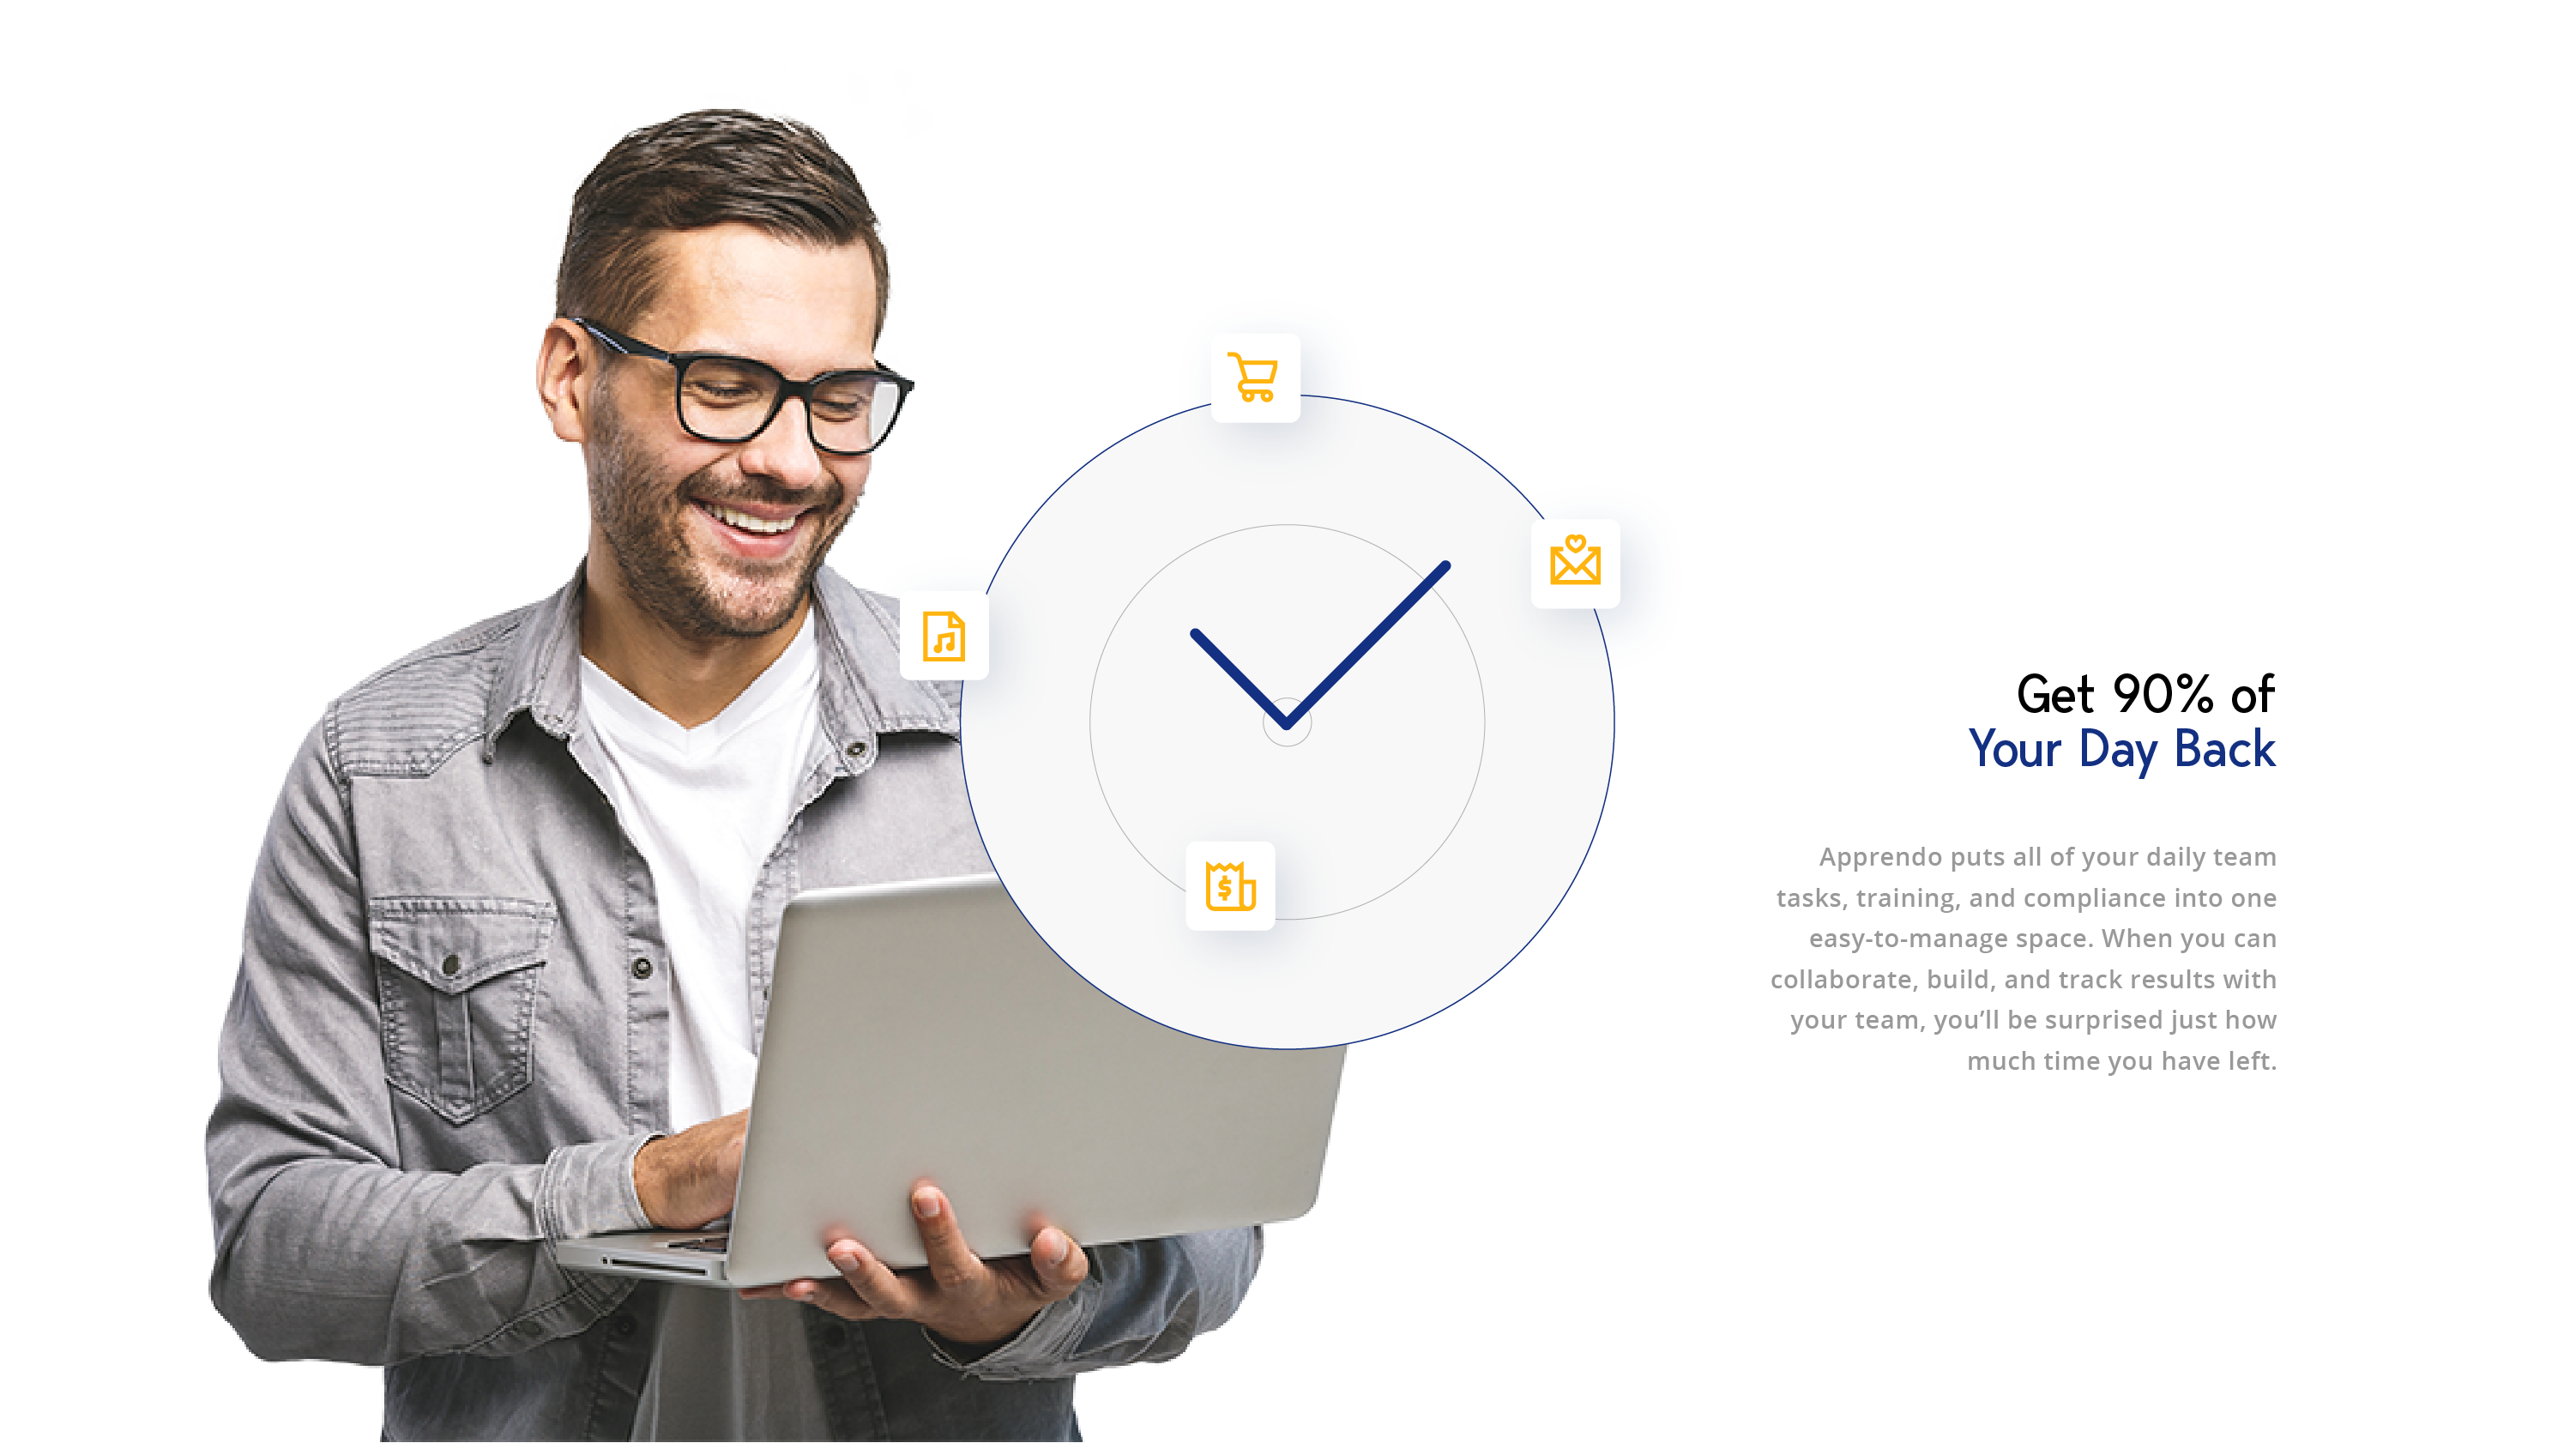 Get 90% of Your Day Back - Apprendo puts all of your daily team tasks, training, and compliance into one easy-to-manage space. When you can collaborate, build, and track results with your team, you'll be surprised just how much time you have left.